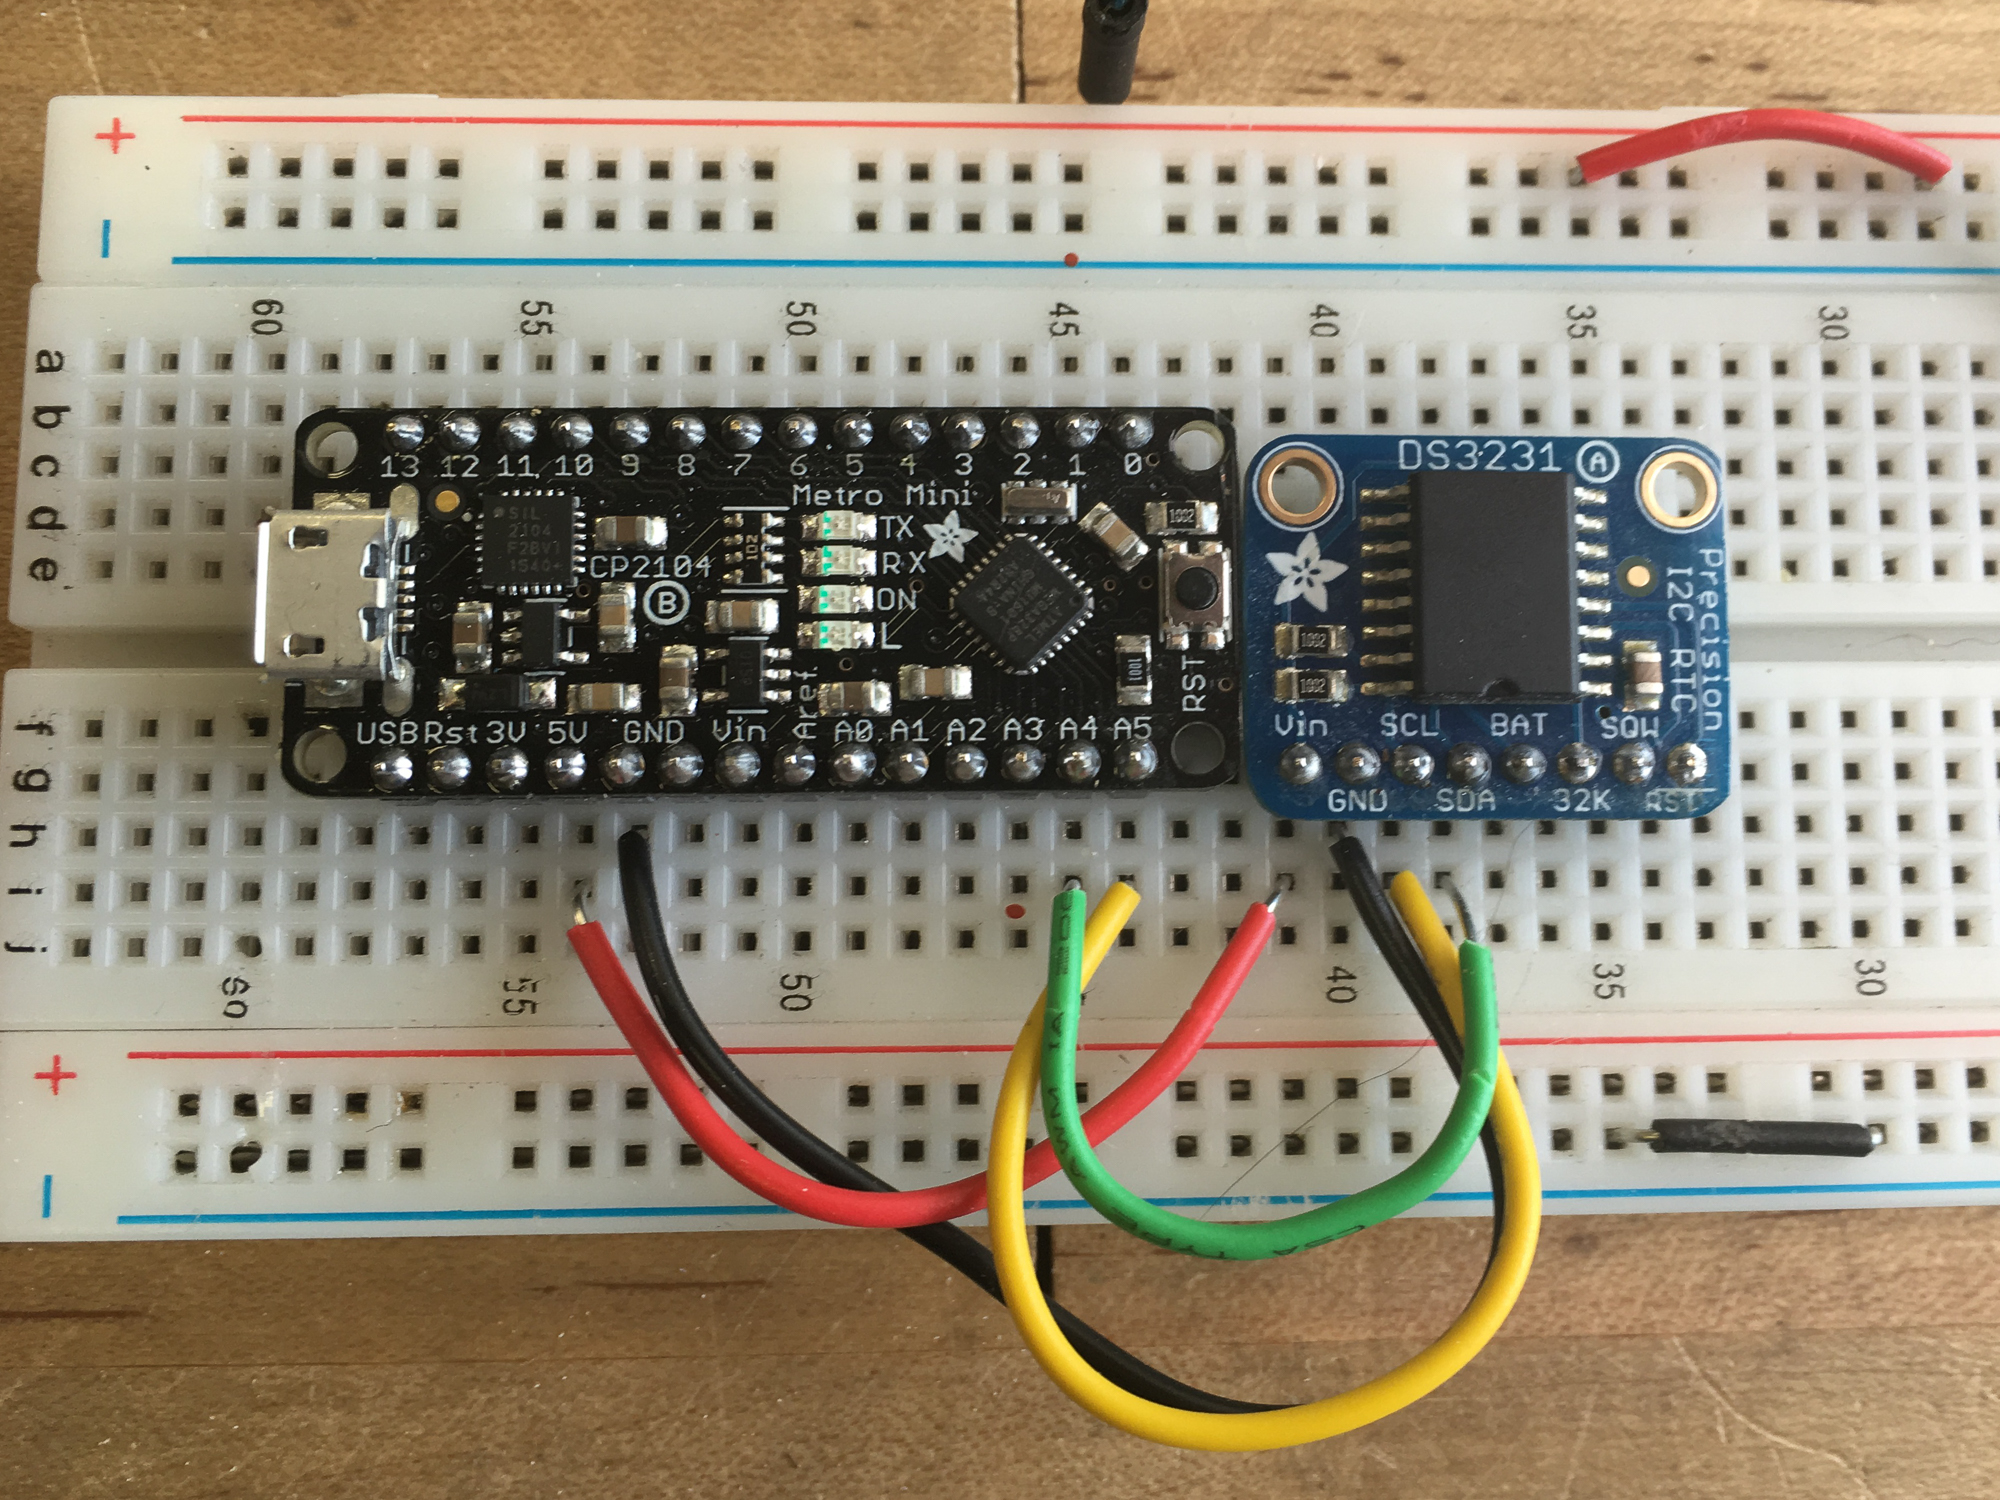 adafruit_products_IMG_2552_2k.jpg